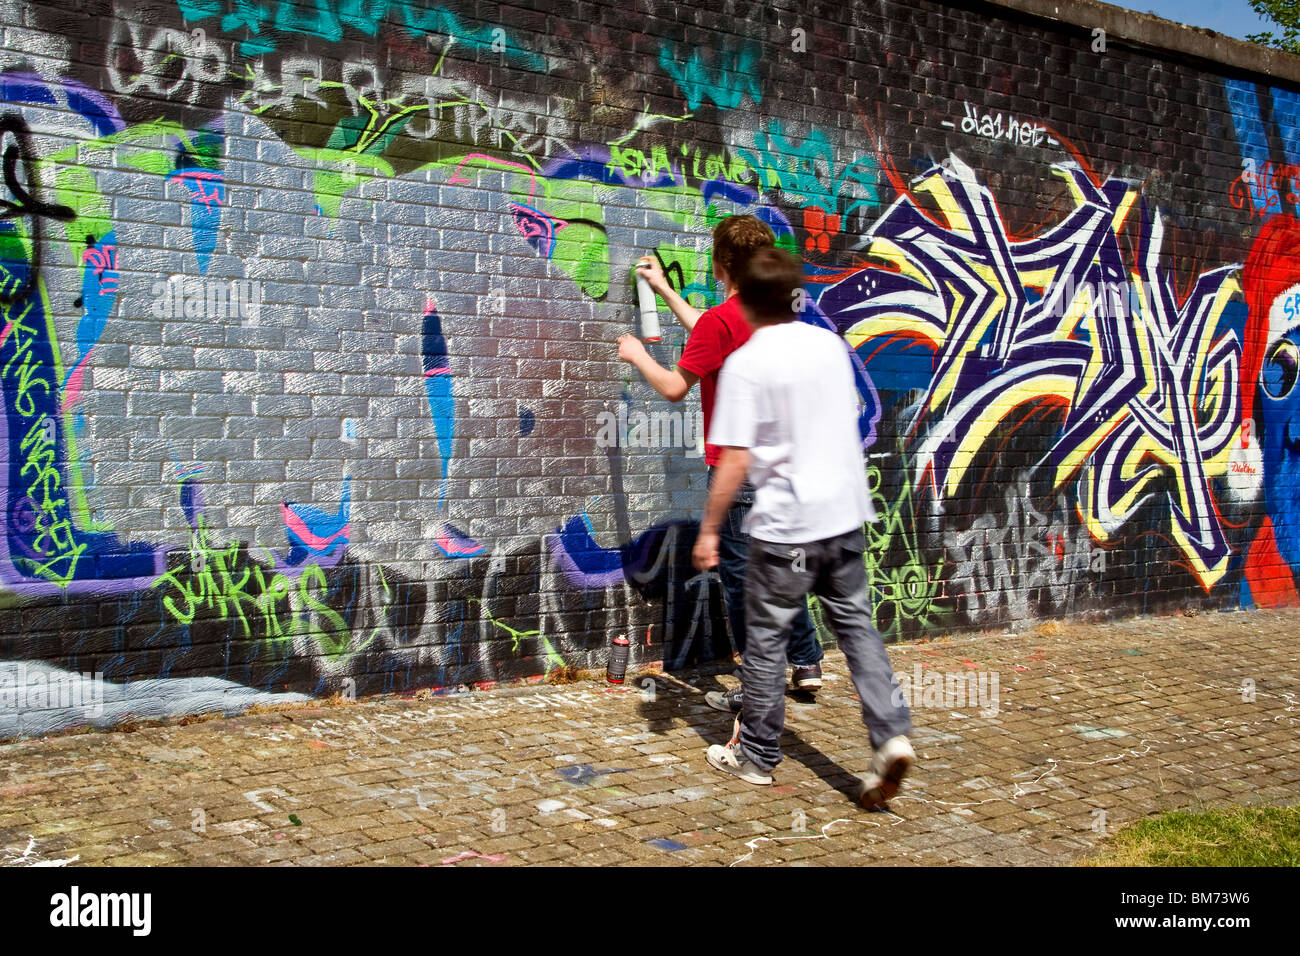 dpm hall of fame legal graffiti wall at mains road dundee two stock photo 29660210 alamy. Black Bedroom Furniture Sets. Home Design Ideas